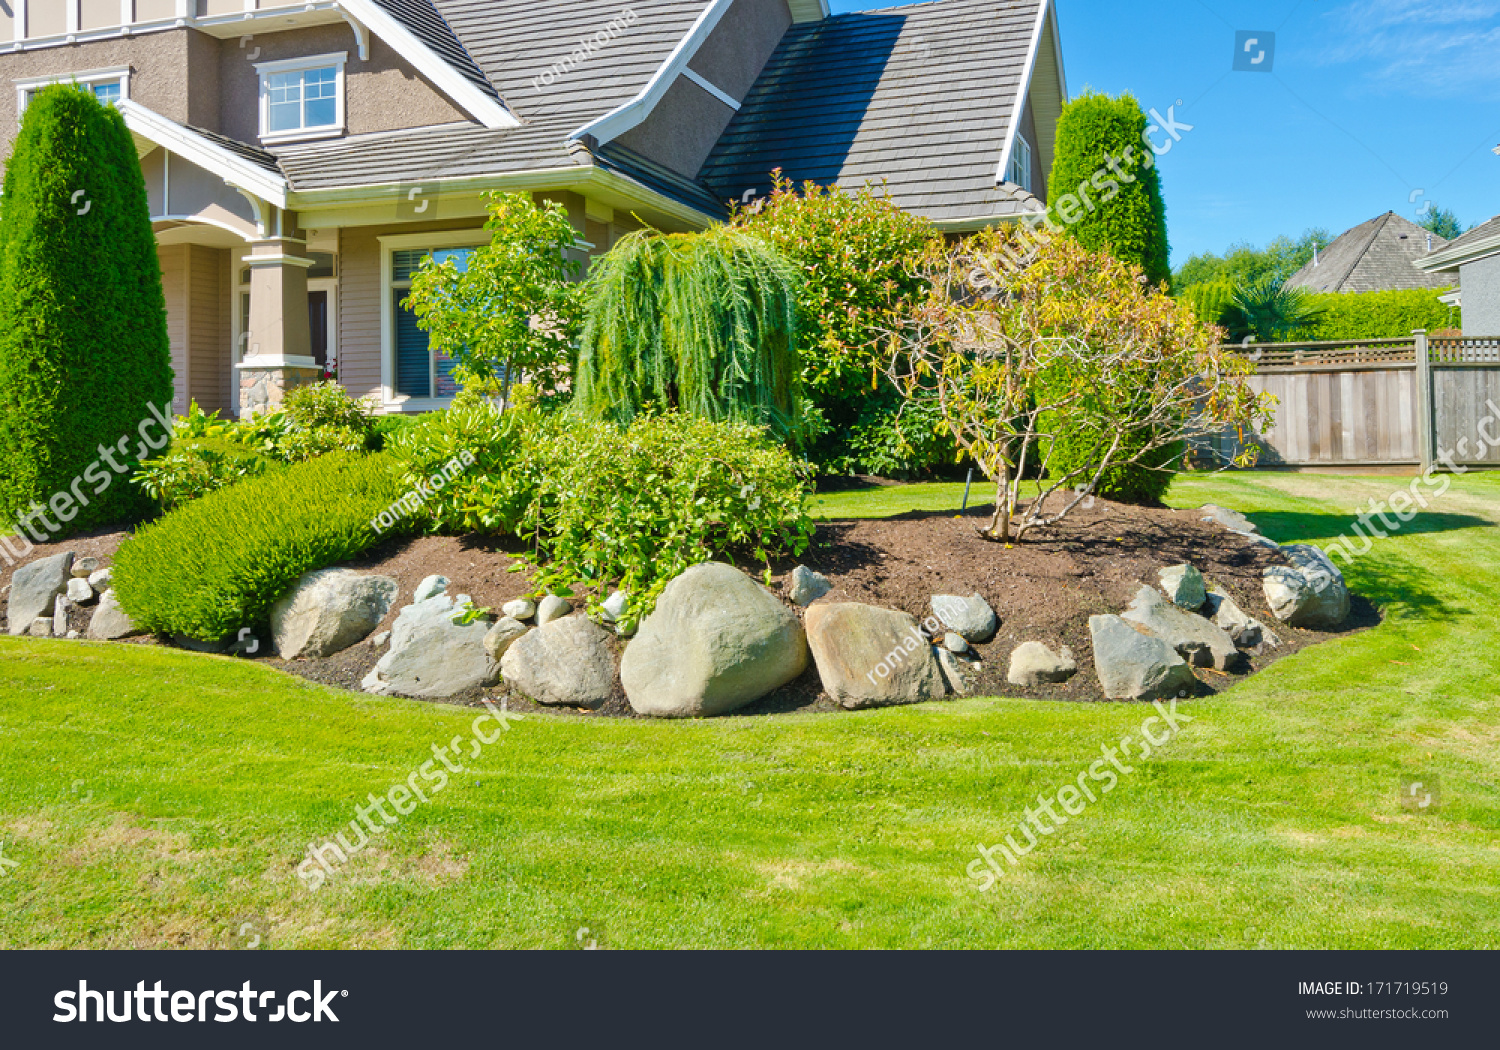 Flowers Stones Nicely Trimmed Bushes Front Stock Photo 171719519 ...